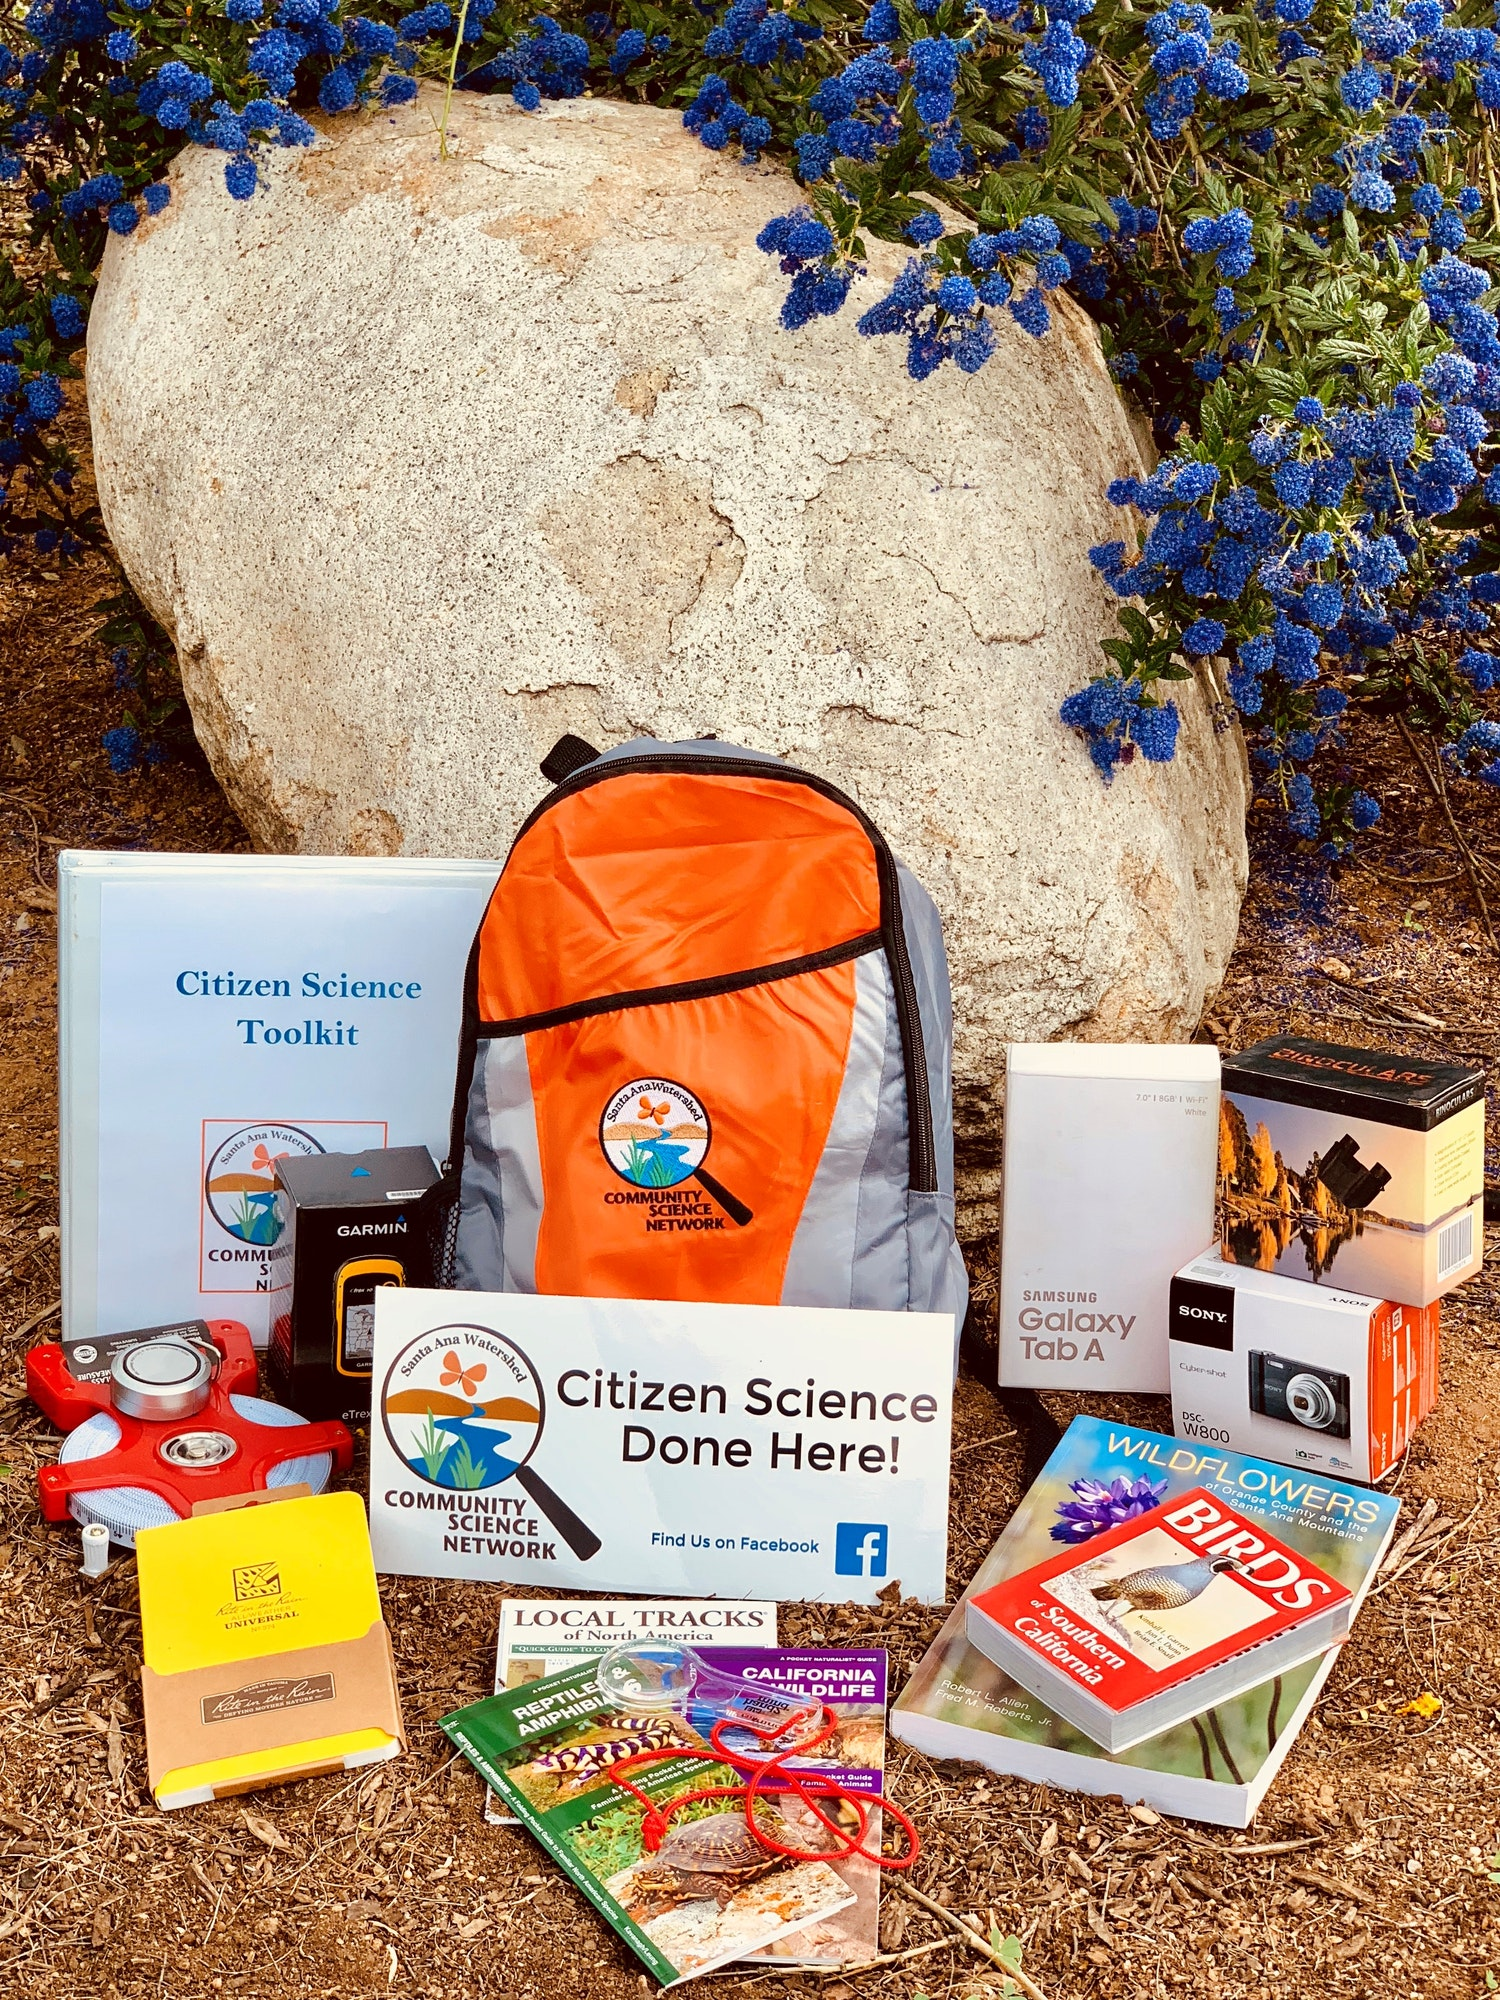 Image of Citizen Science Backpack with materials that can be checked out at our RCRCD outpost.